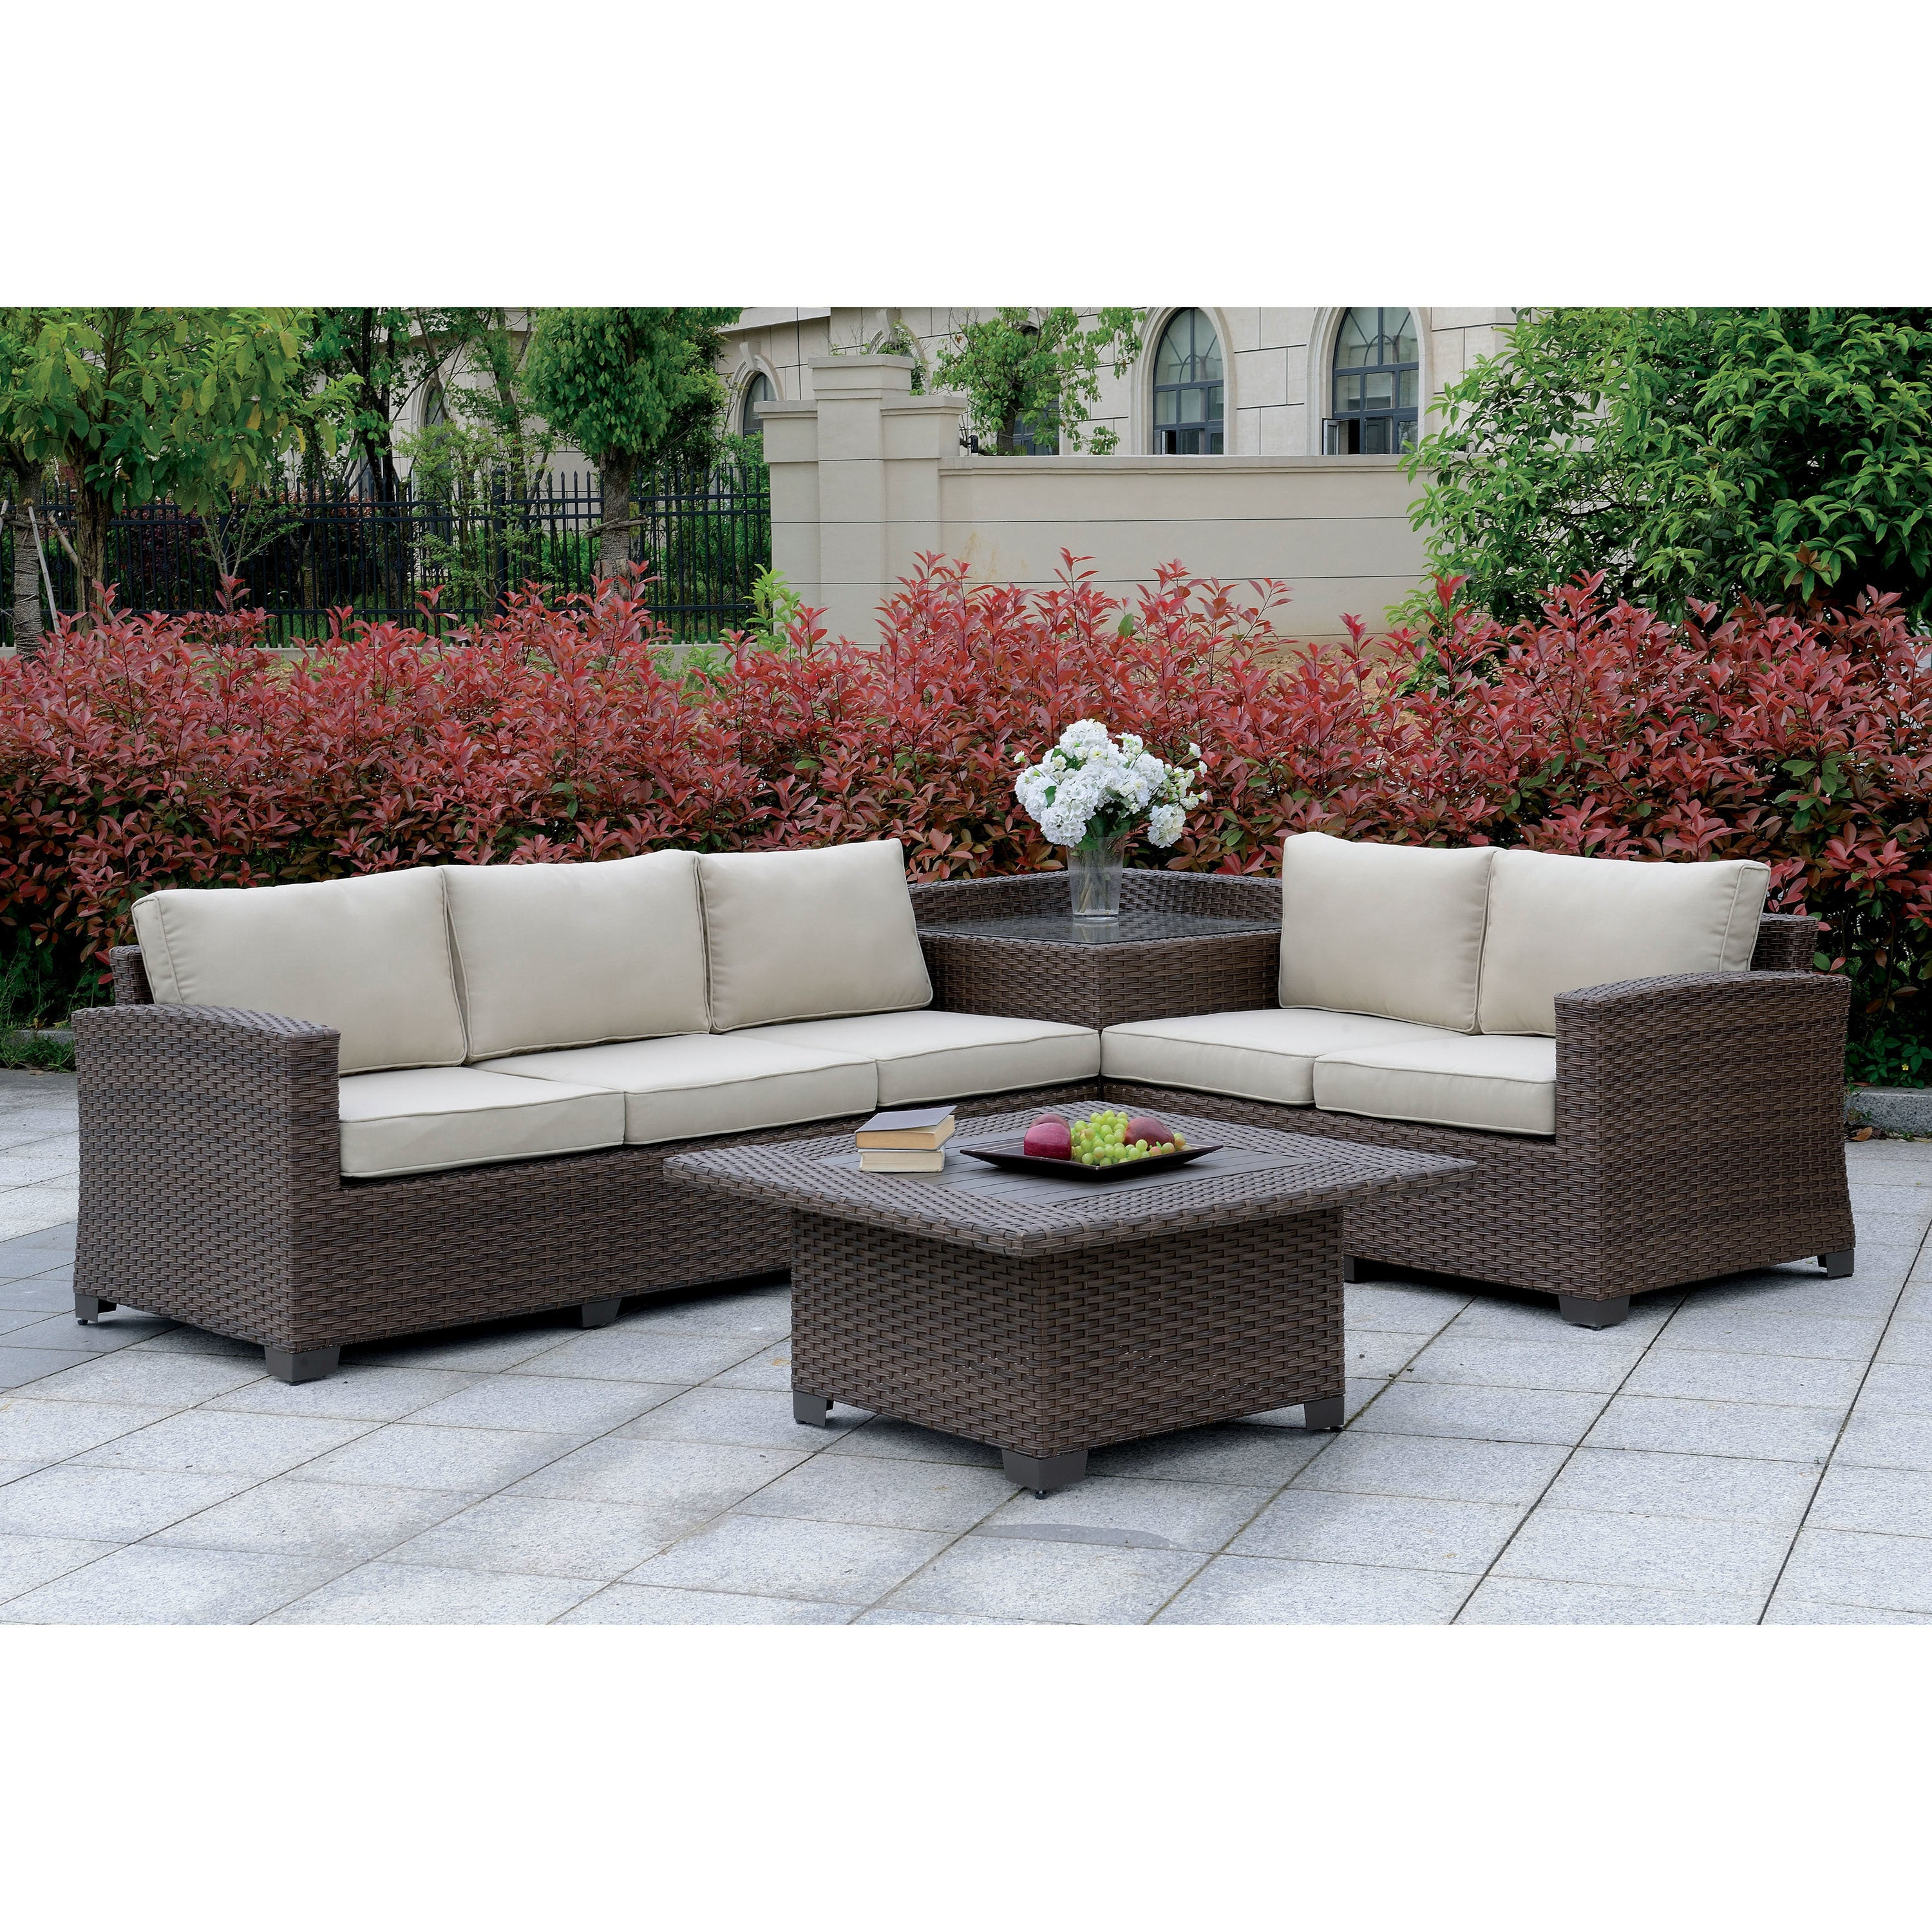 This Furniture Of America Langston Contemporary Outdoor Patio Sectional With Corner Table Free Shipping Today 25899210